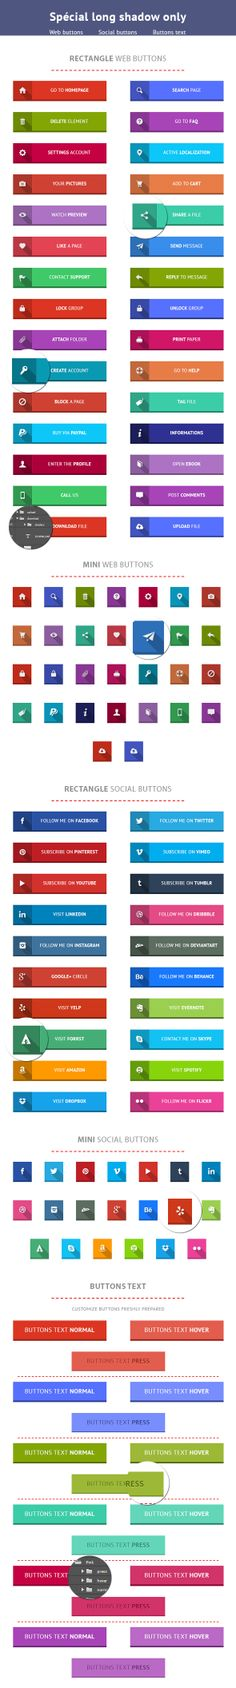 Flat Web & Social Buttons Set  http://graphicriver.net/item/flat-web-social-buttons-set/7491198?WT.ac=category_thumb&WT.seg_1=category_thumb&WT.z_author=Steyazo  File under copyright.